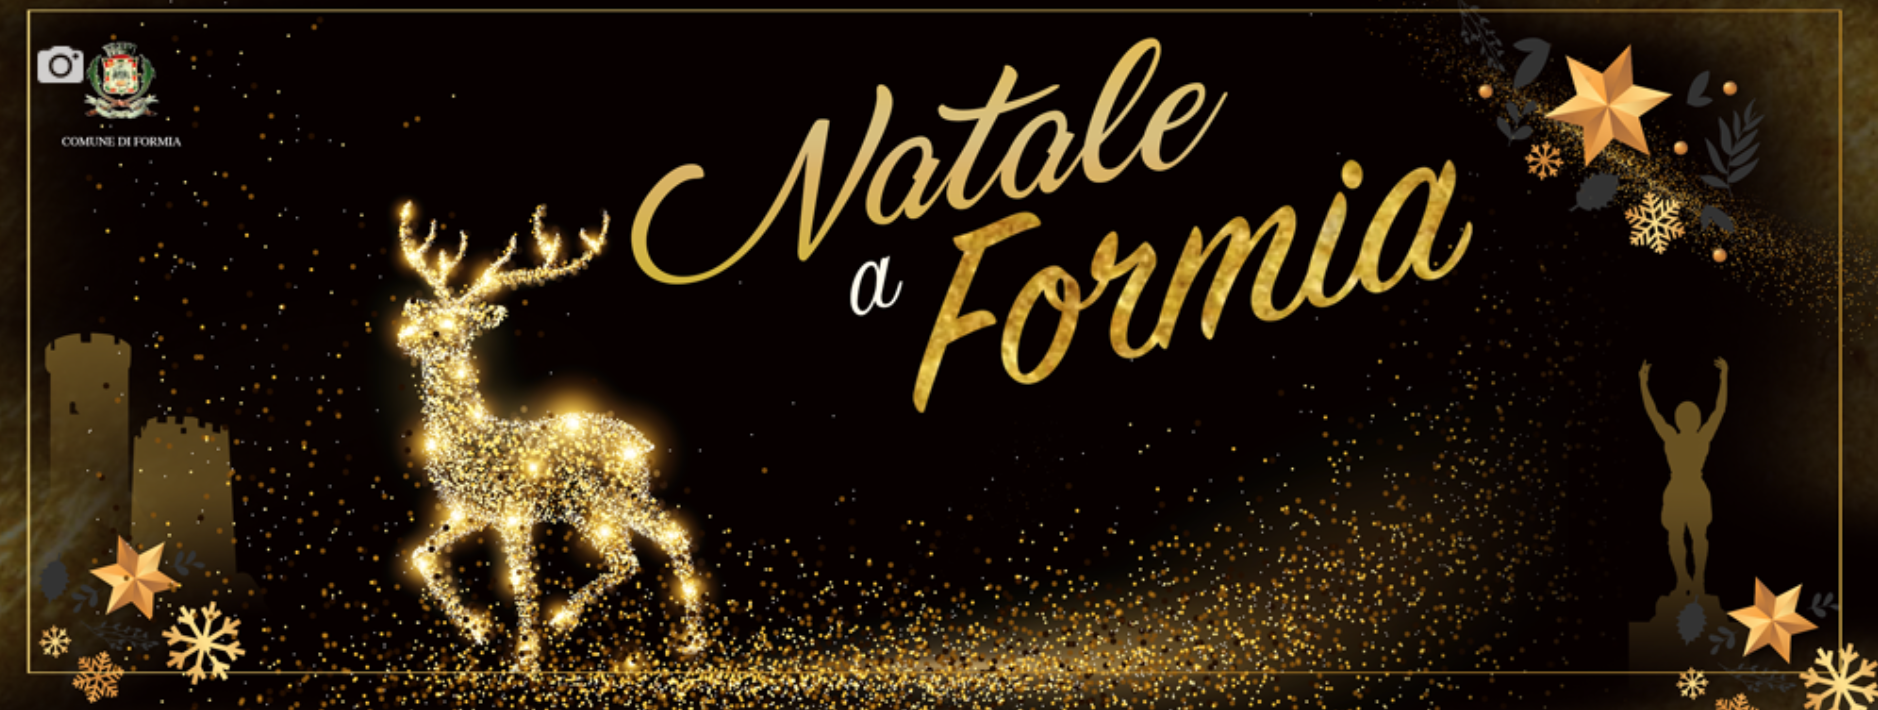 Natale a Formia - 2018